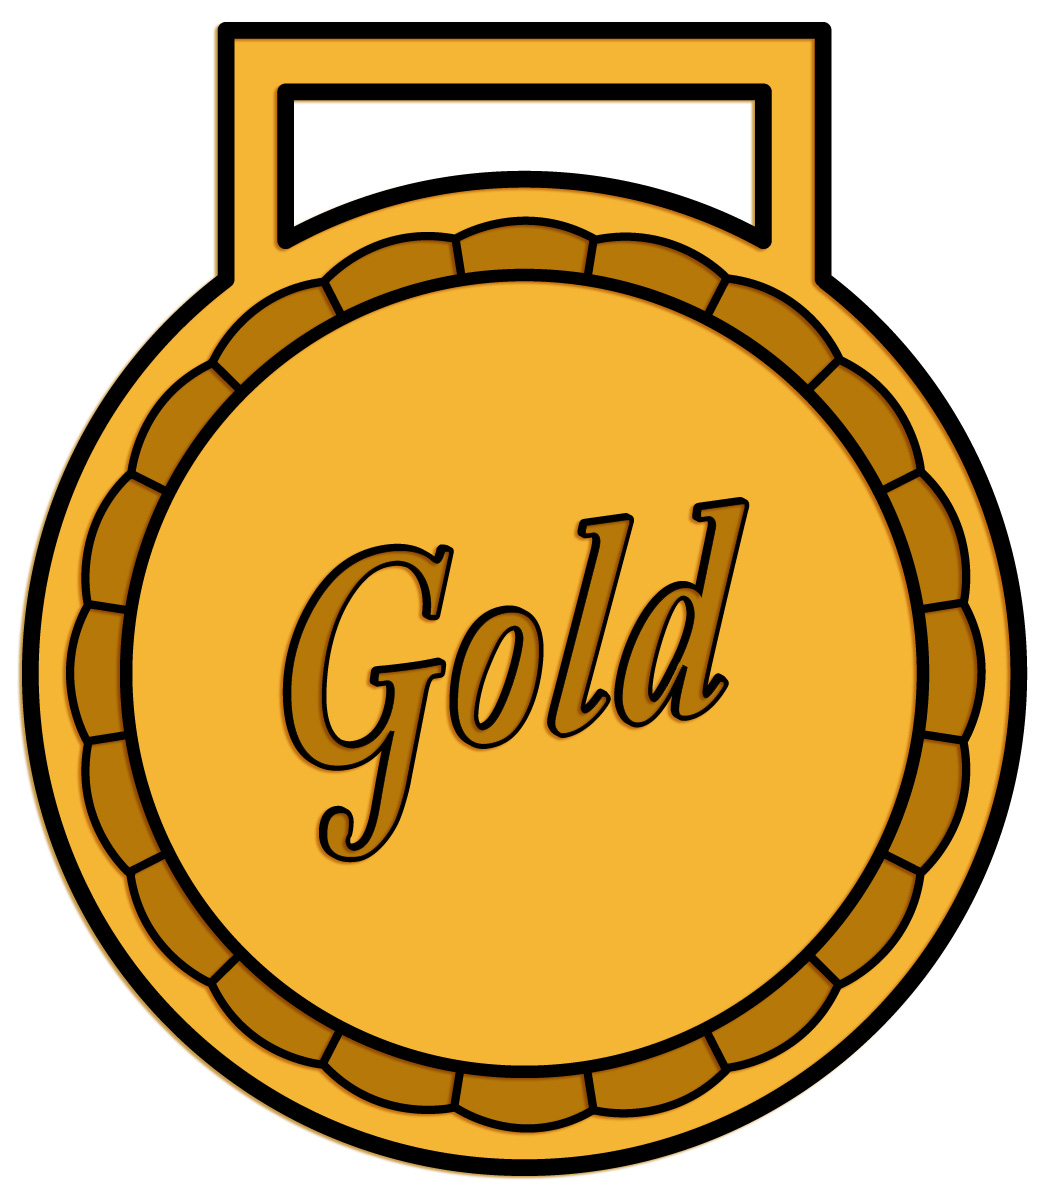 Gold Medal Clipart - Clipart Suggest